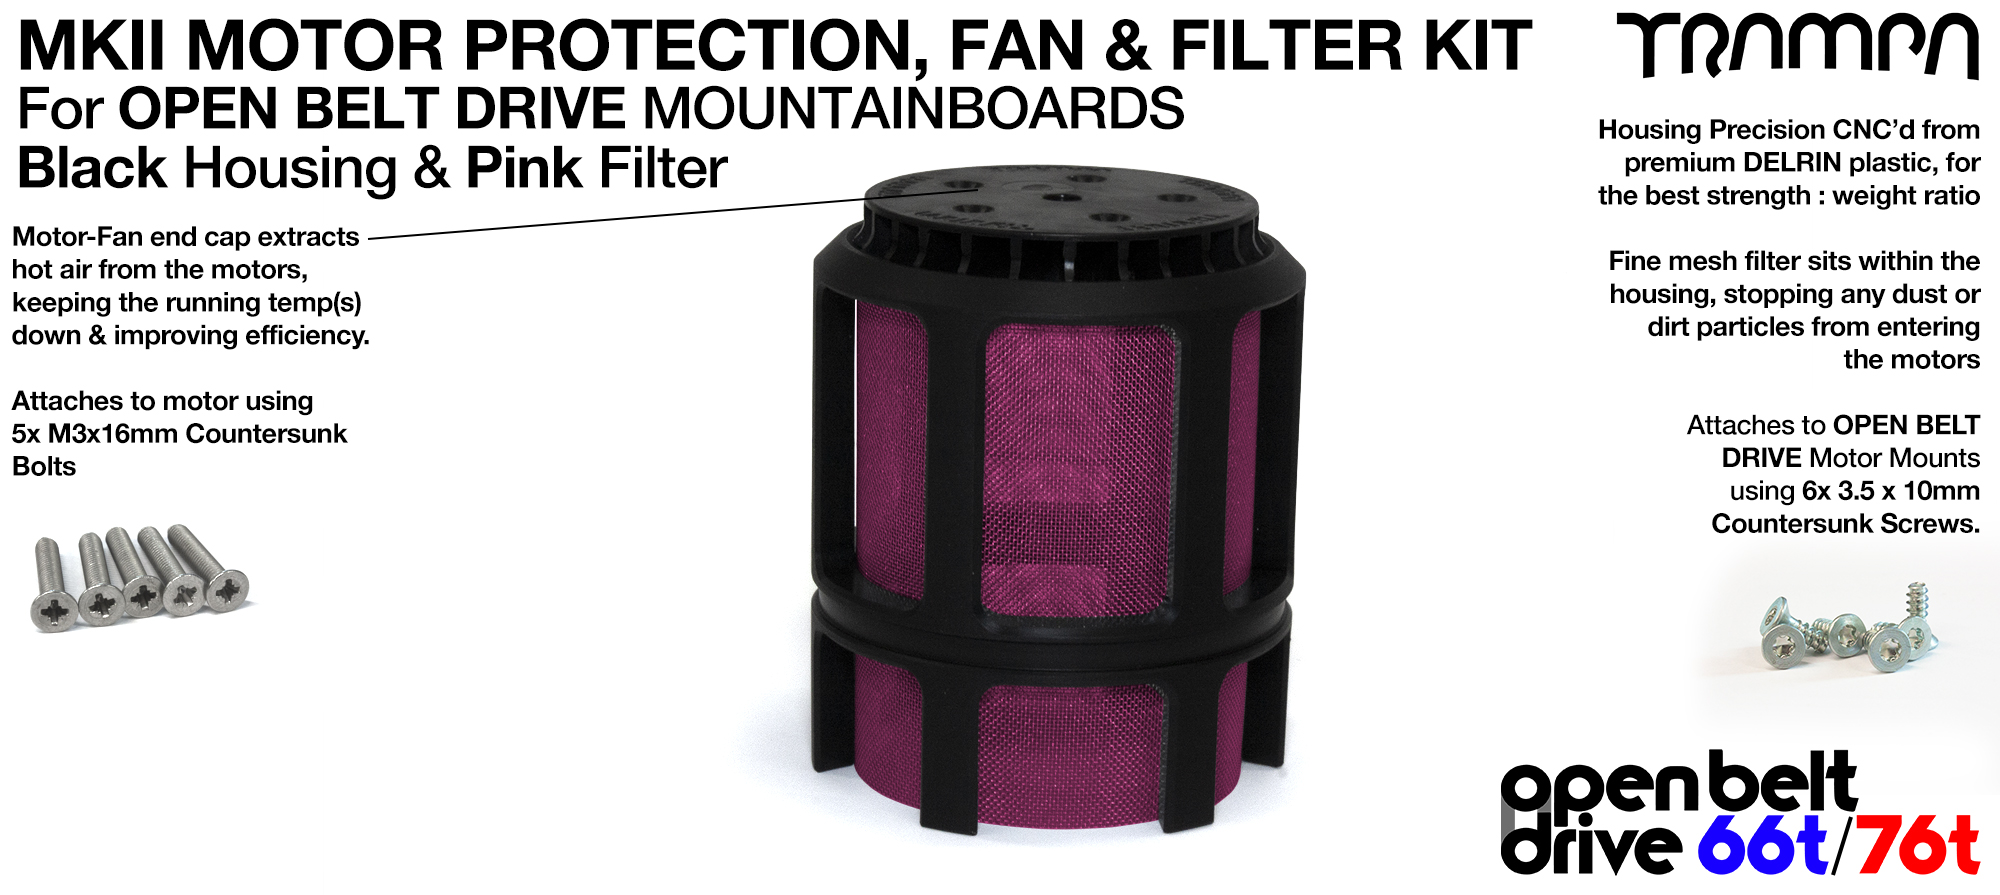 1x OBD MKII Motor protection Sleeve with PINK Filter